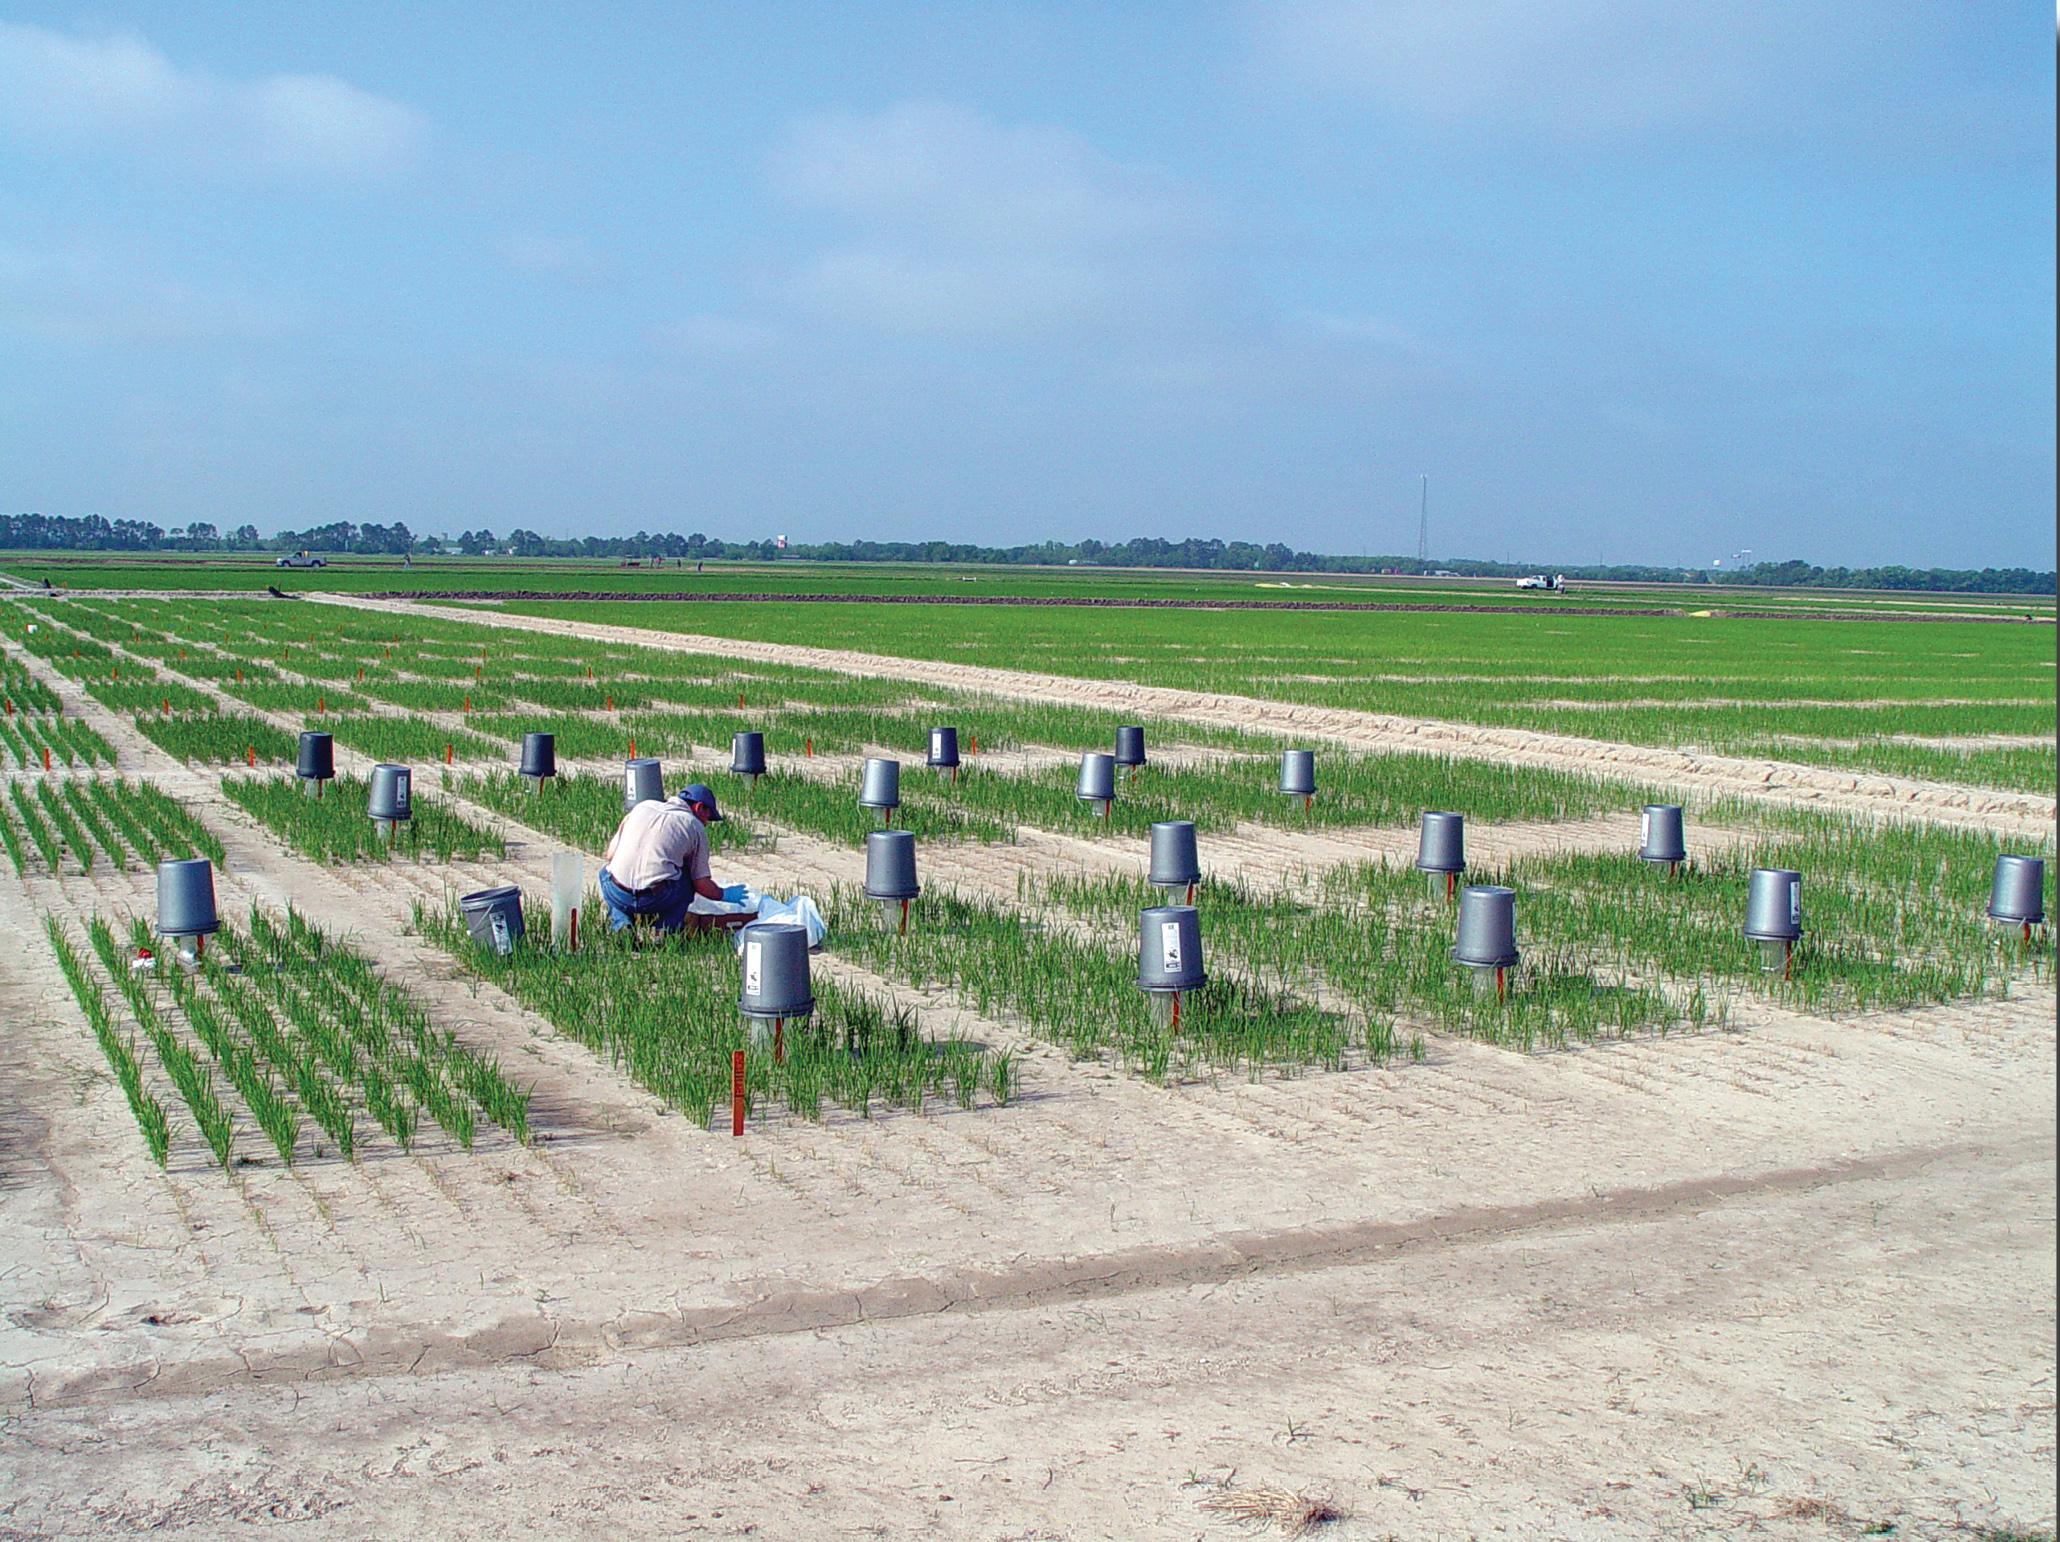 Work focuses on improving rice farming productivity